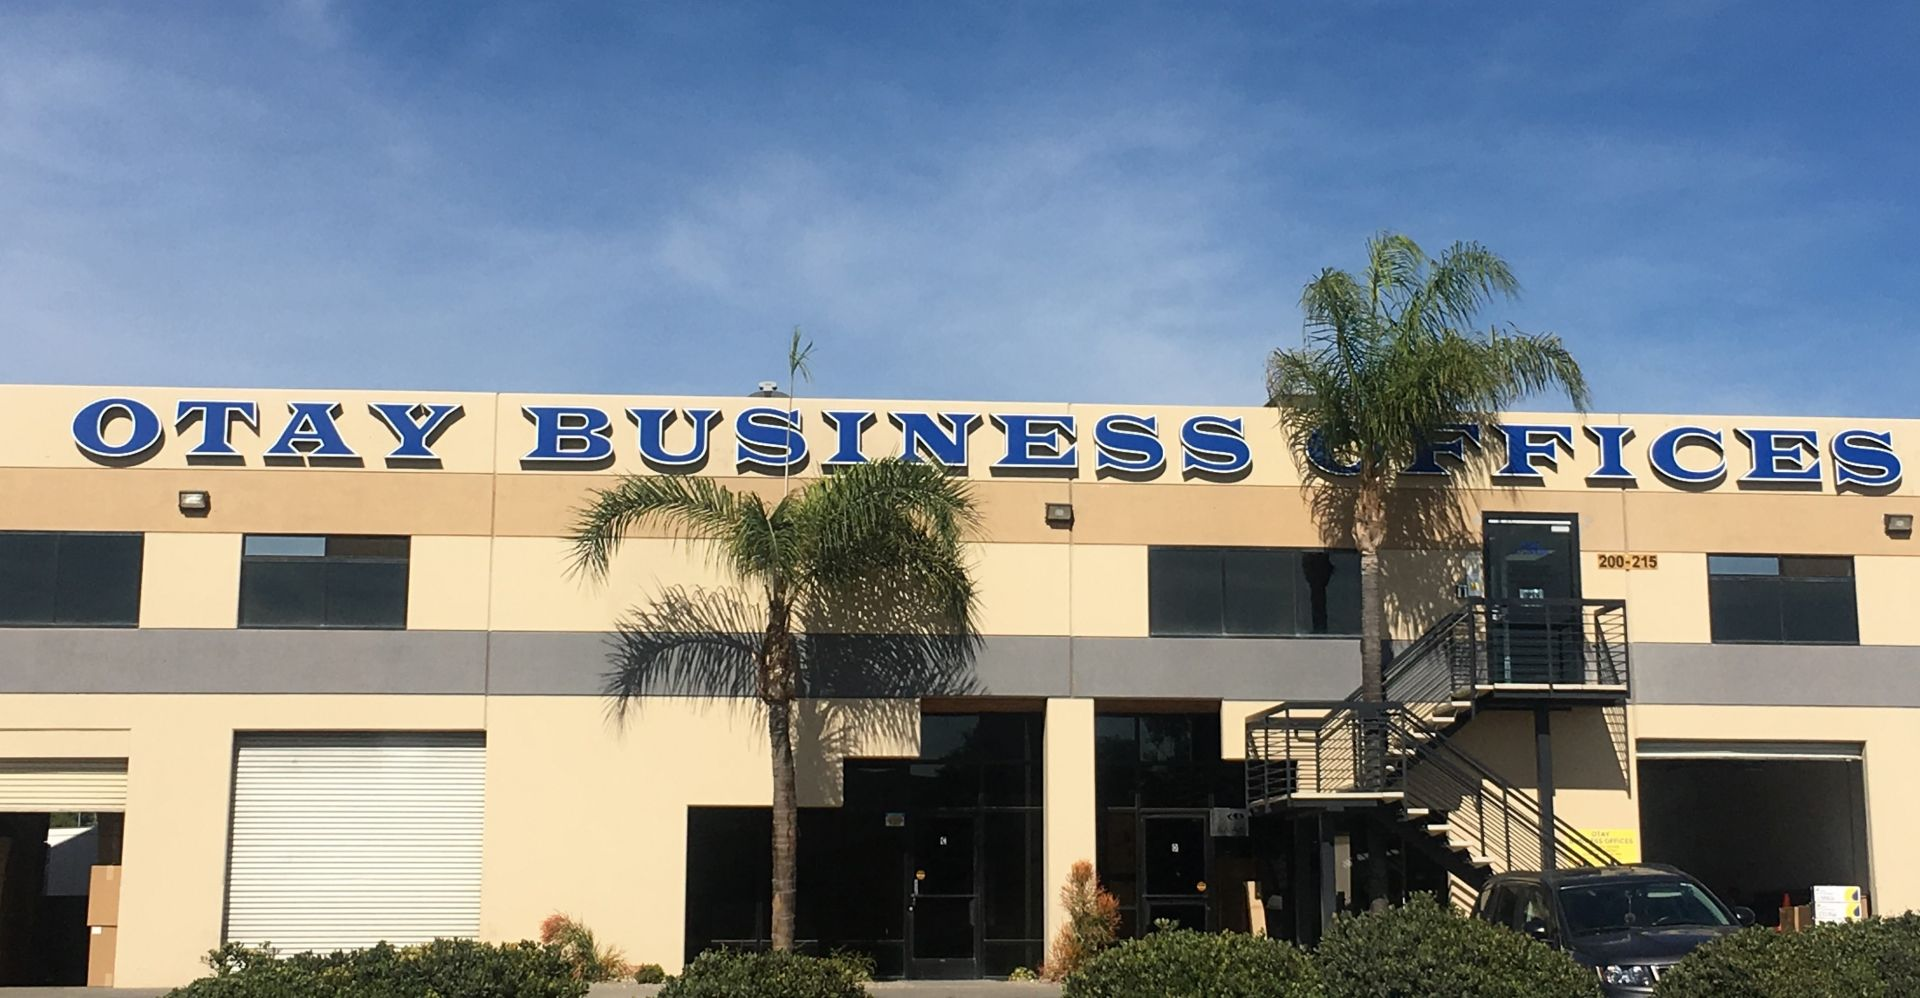 Otay Business Offices, San Diego